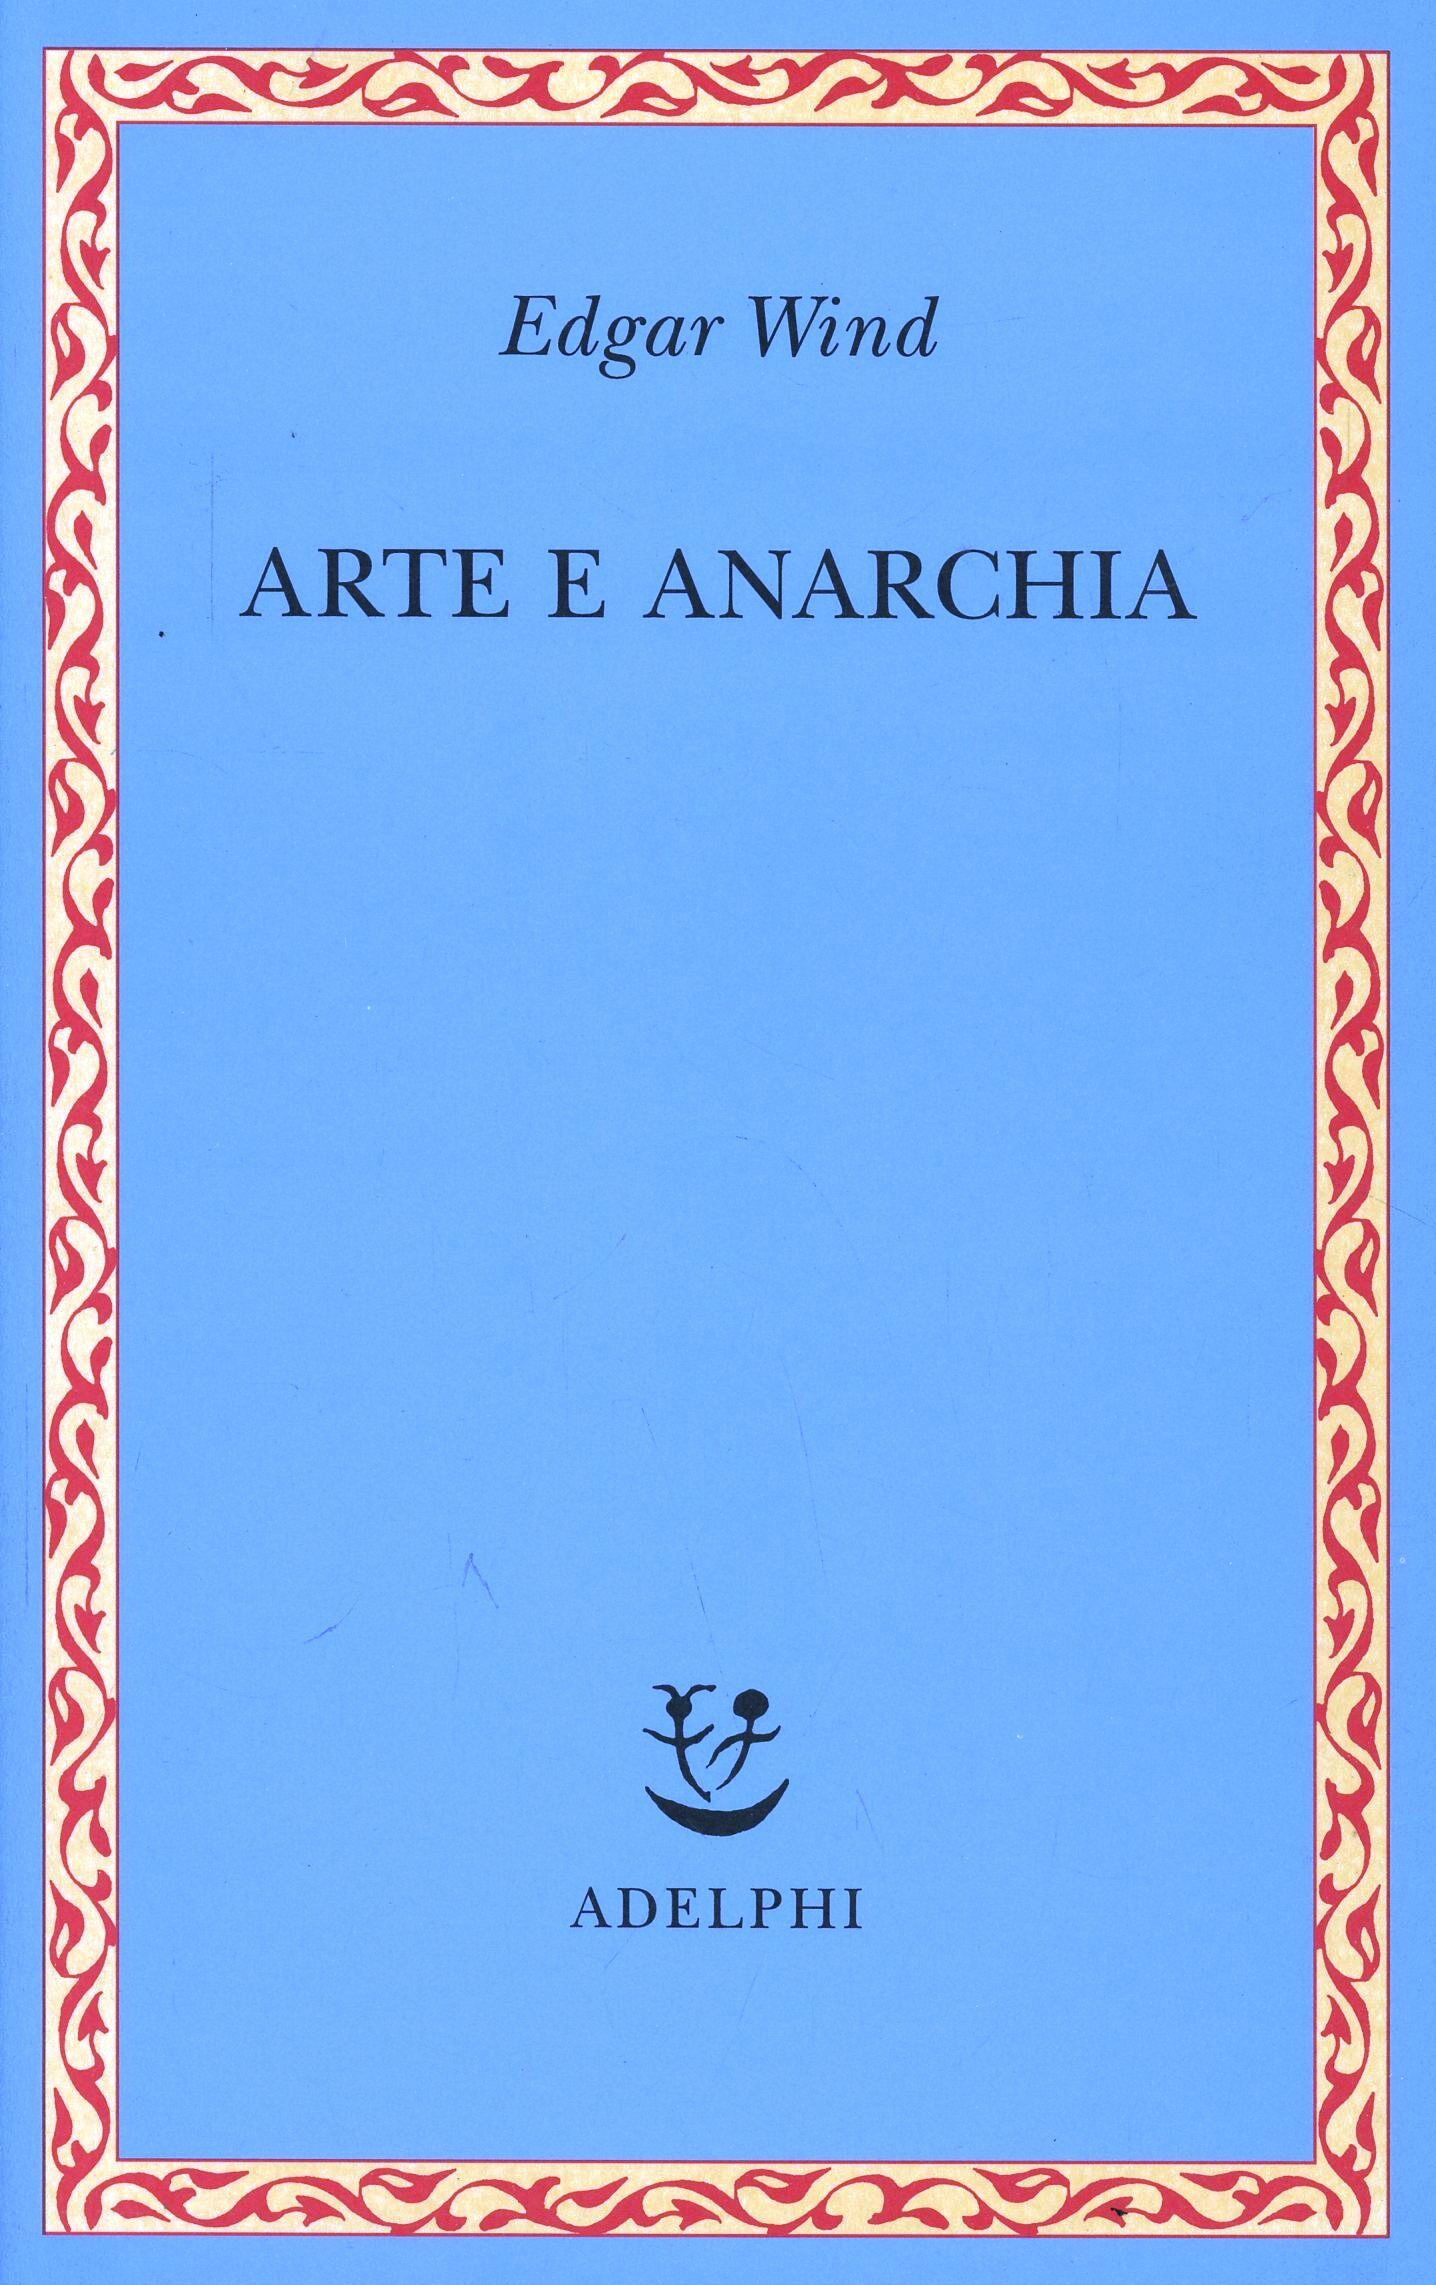 Arte e anarchia